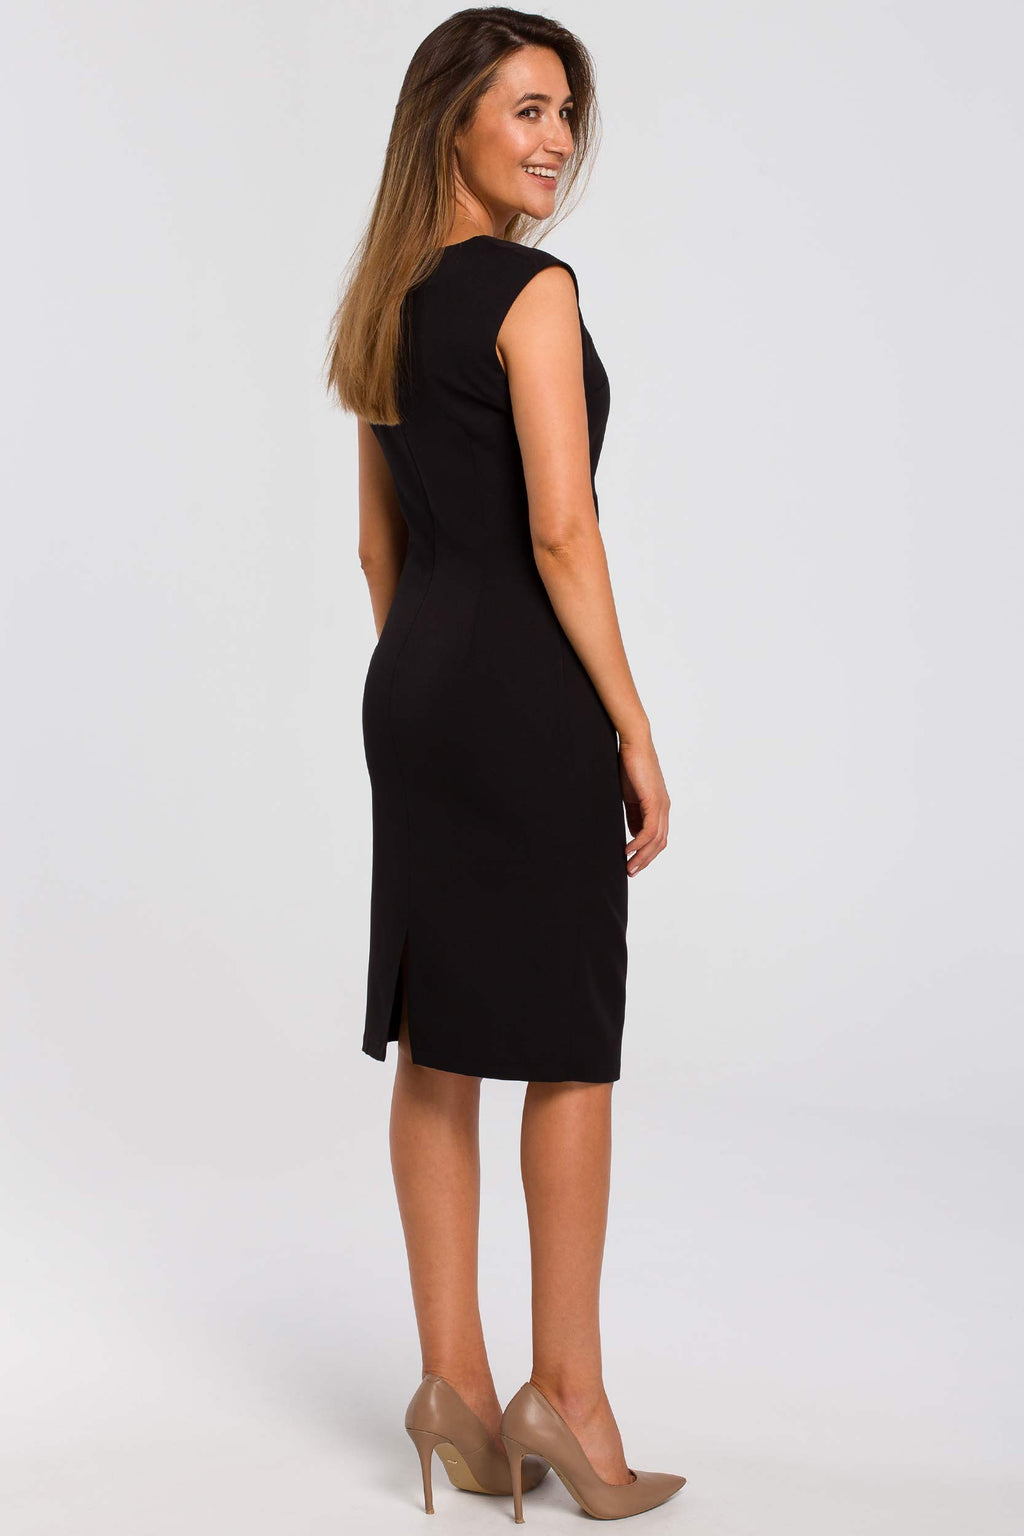 Black Sleeveless Midi Dress With Gathered Front - So Chic Boutique